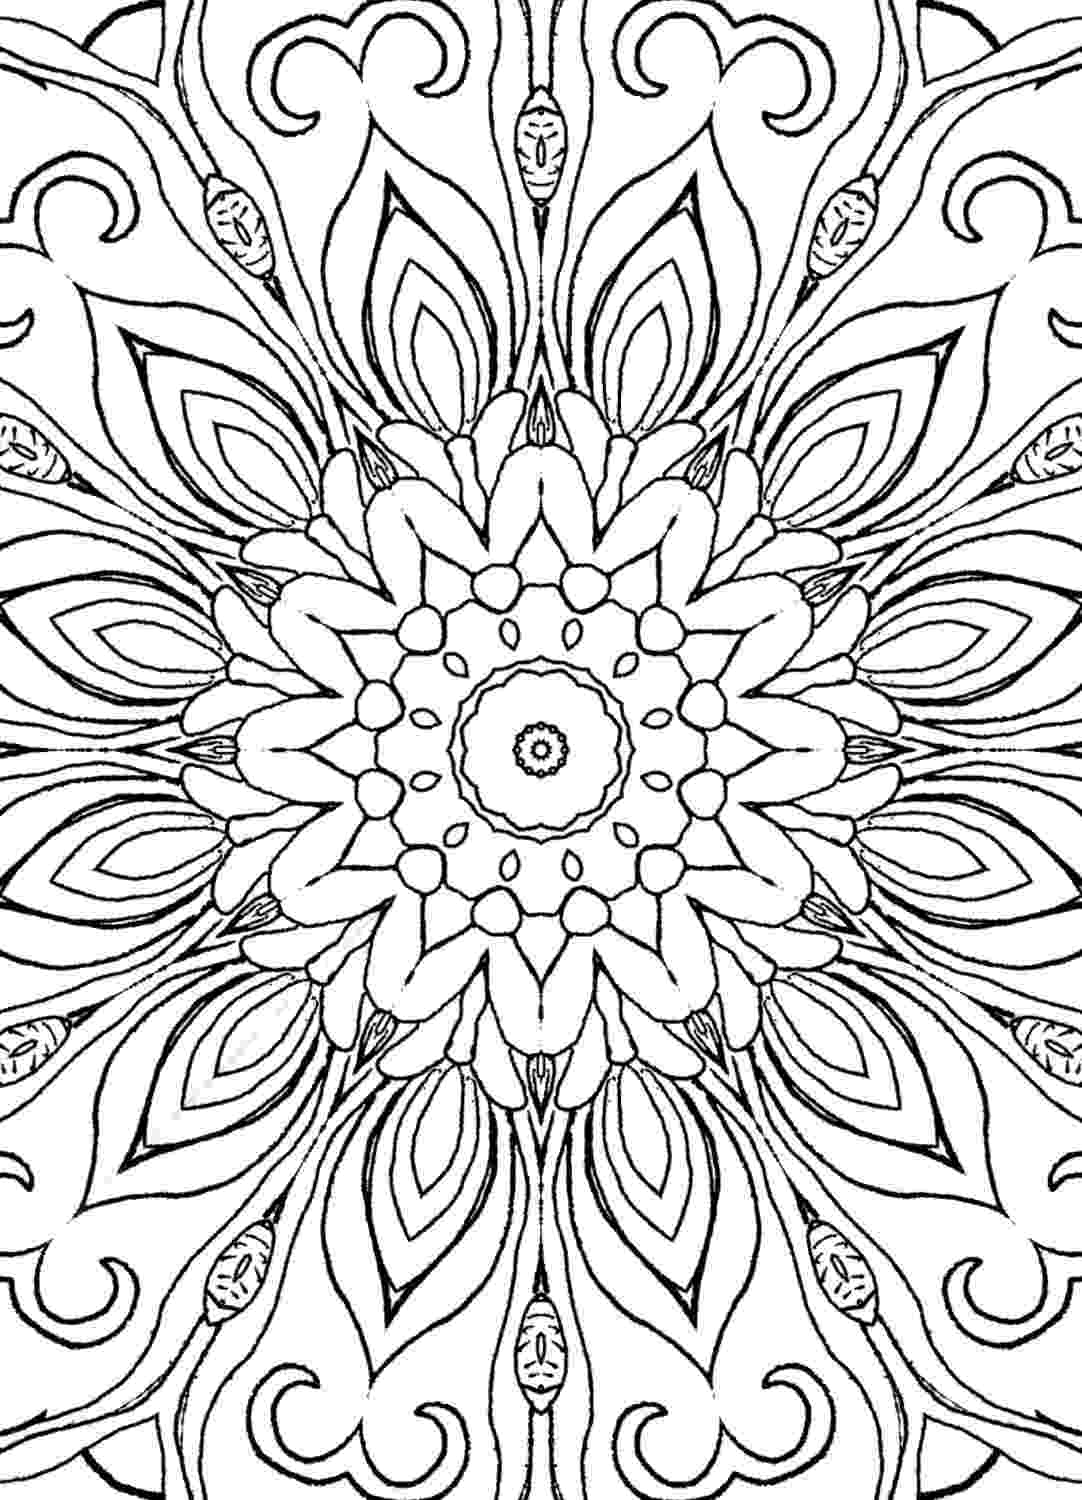 coloring pages for adults patterns free printable geometric coloring pages for kids for pages adults patterns coloring